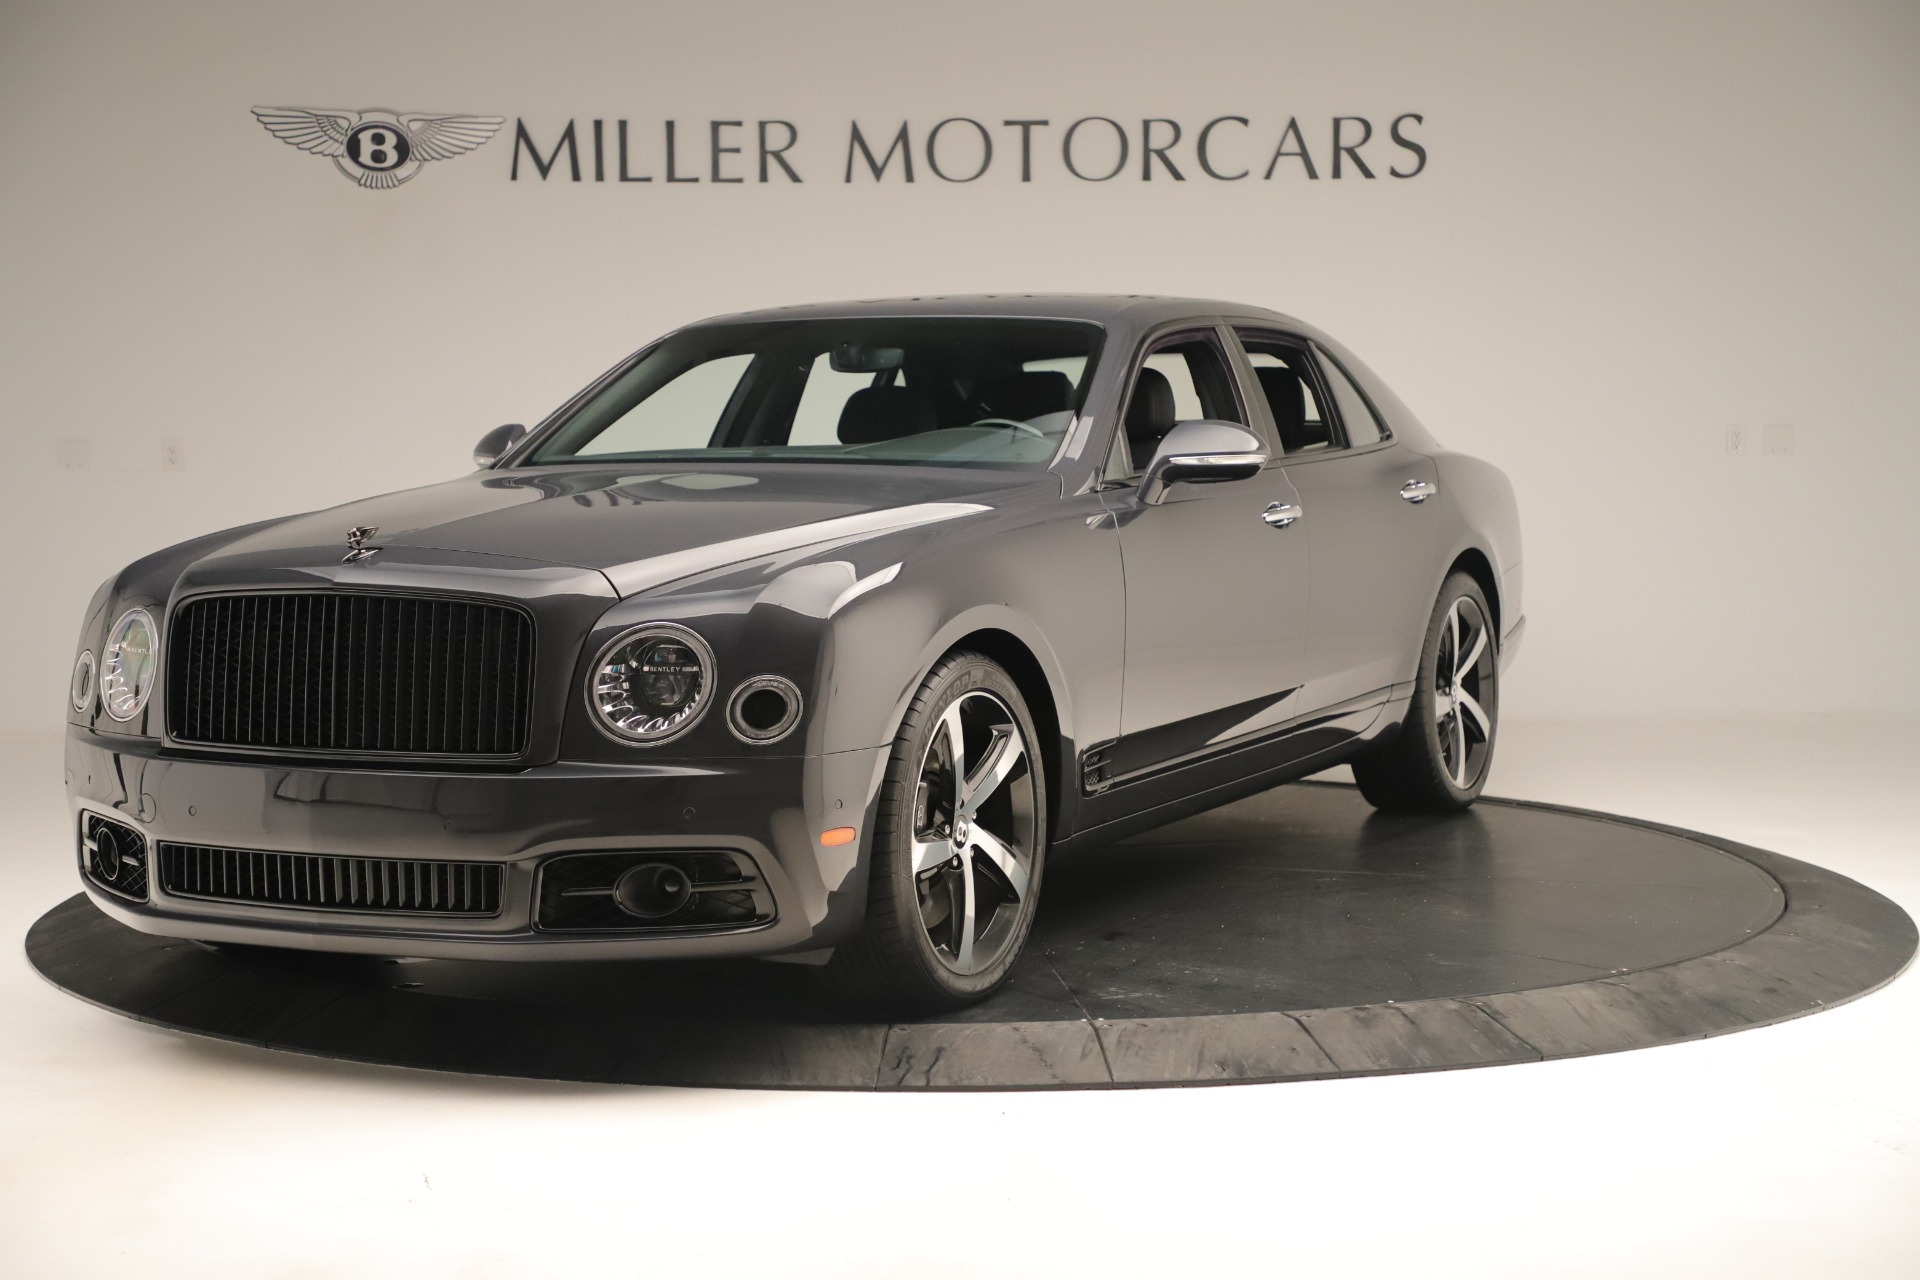 Pre Owned 2018 Bentley Mulsanne Speed Design Series For Sale Miller Motorcars Stock R557a